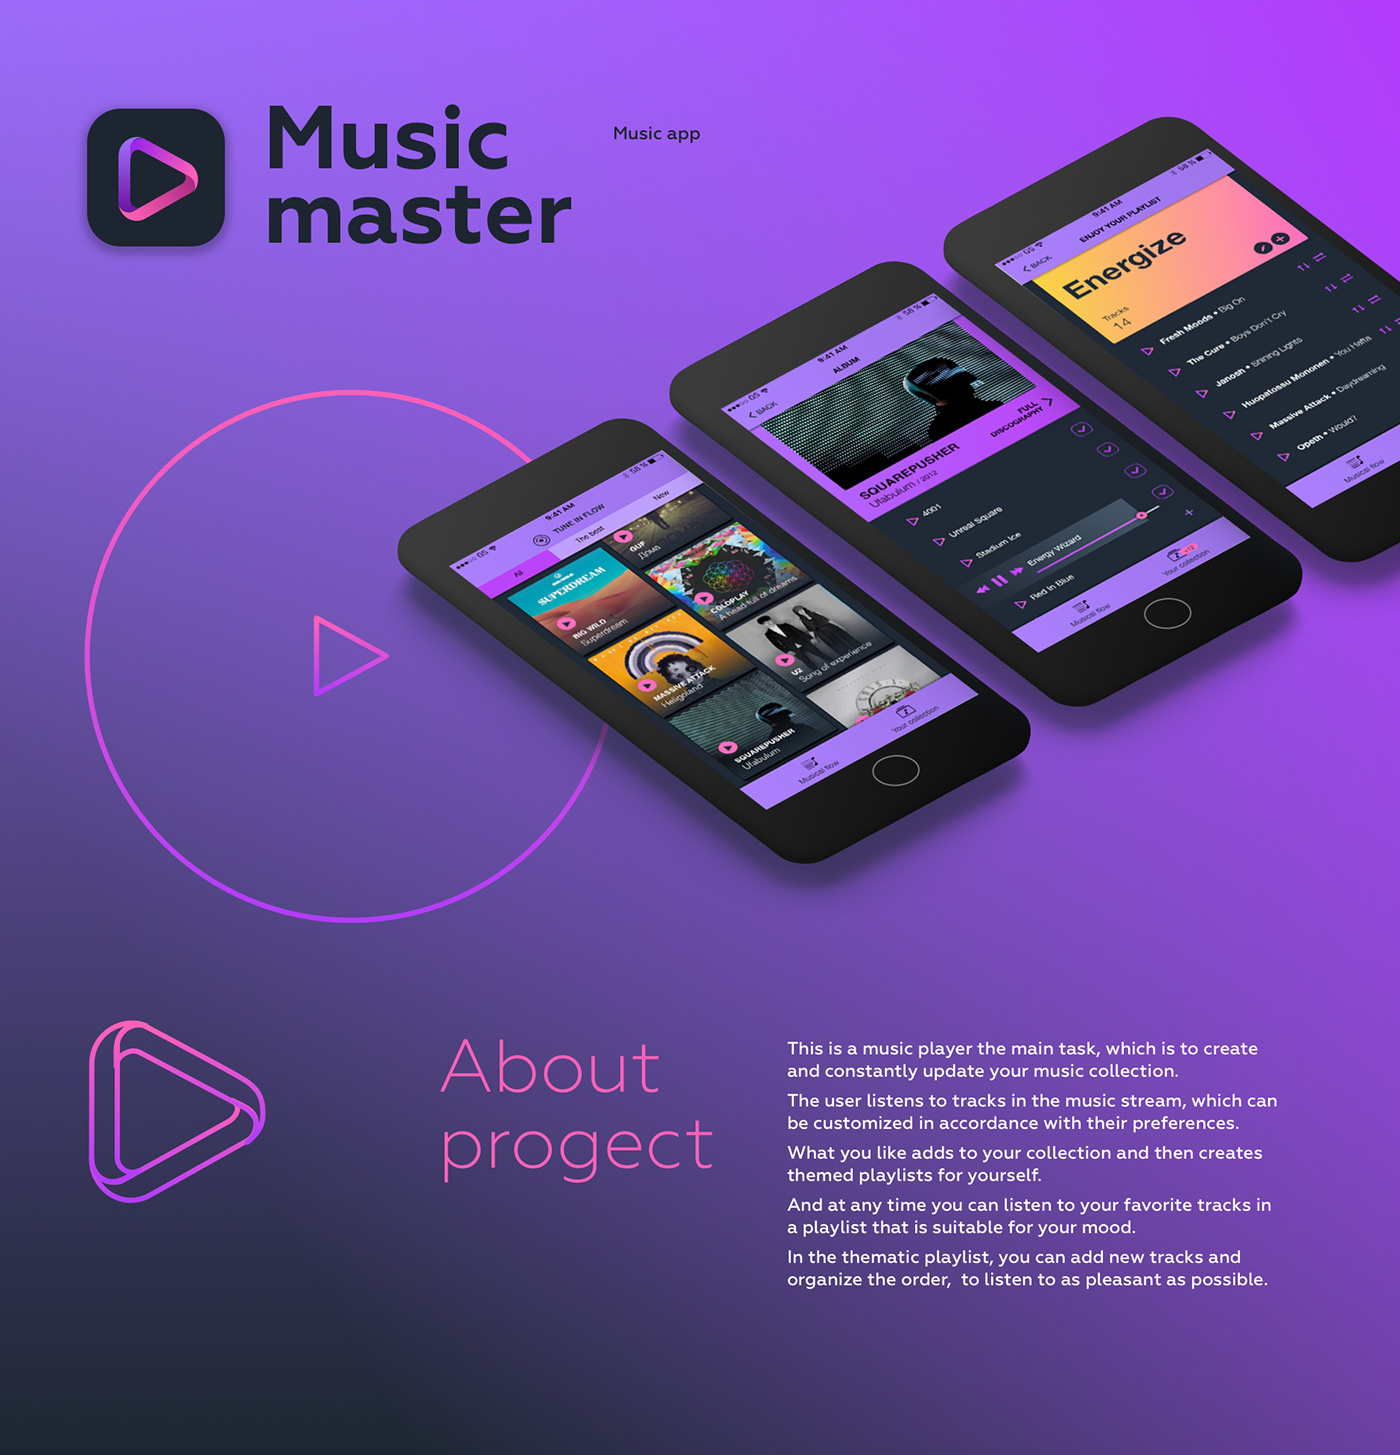 app music music app Music Player music master Prototyping mobile app concept Music player concept ux/ui concept